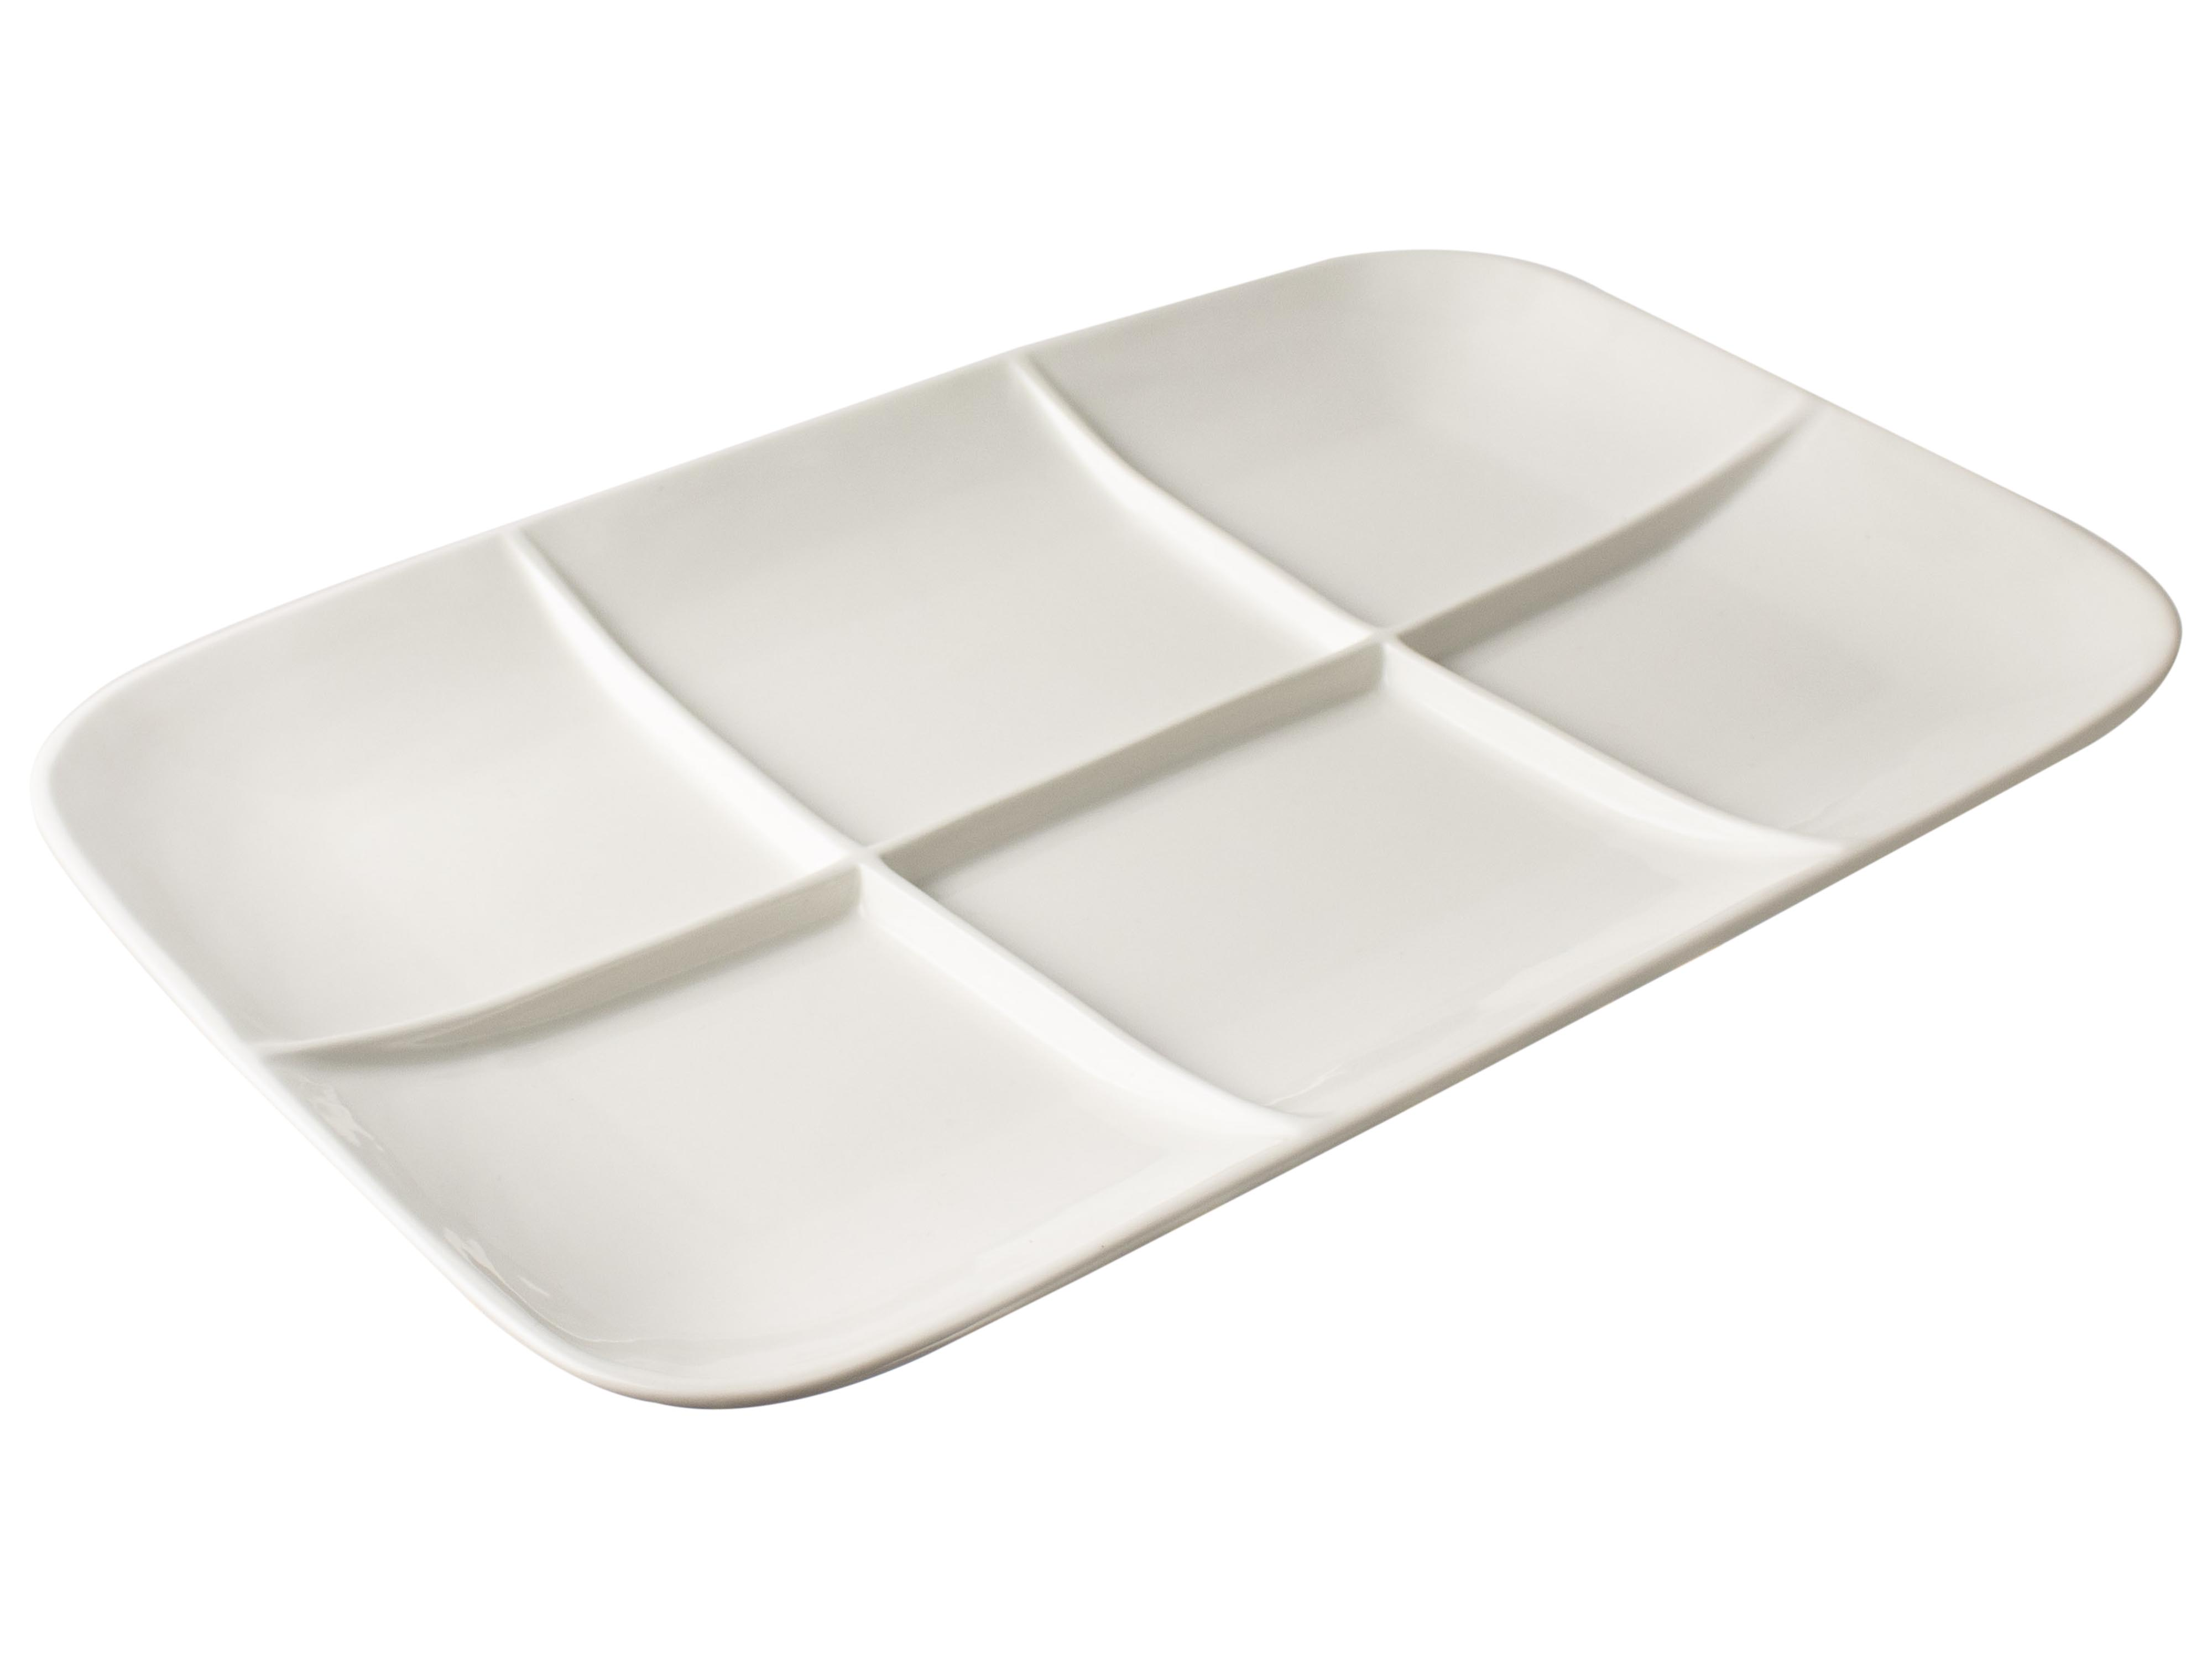 6 Compartment Plates Sparkle Gift